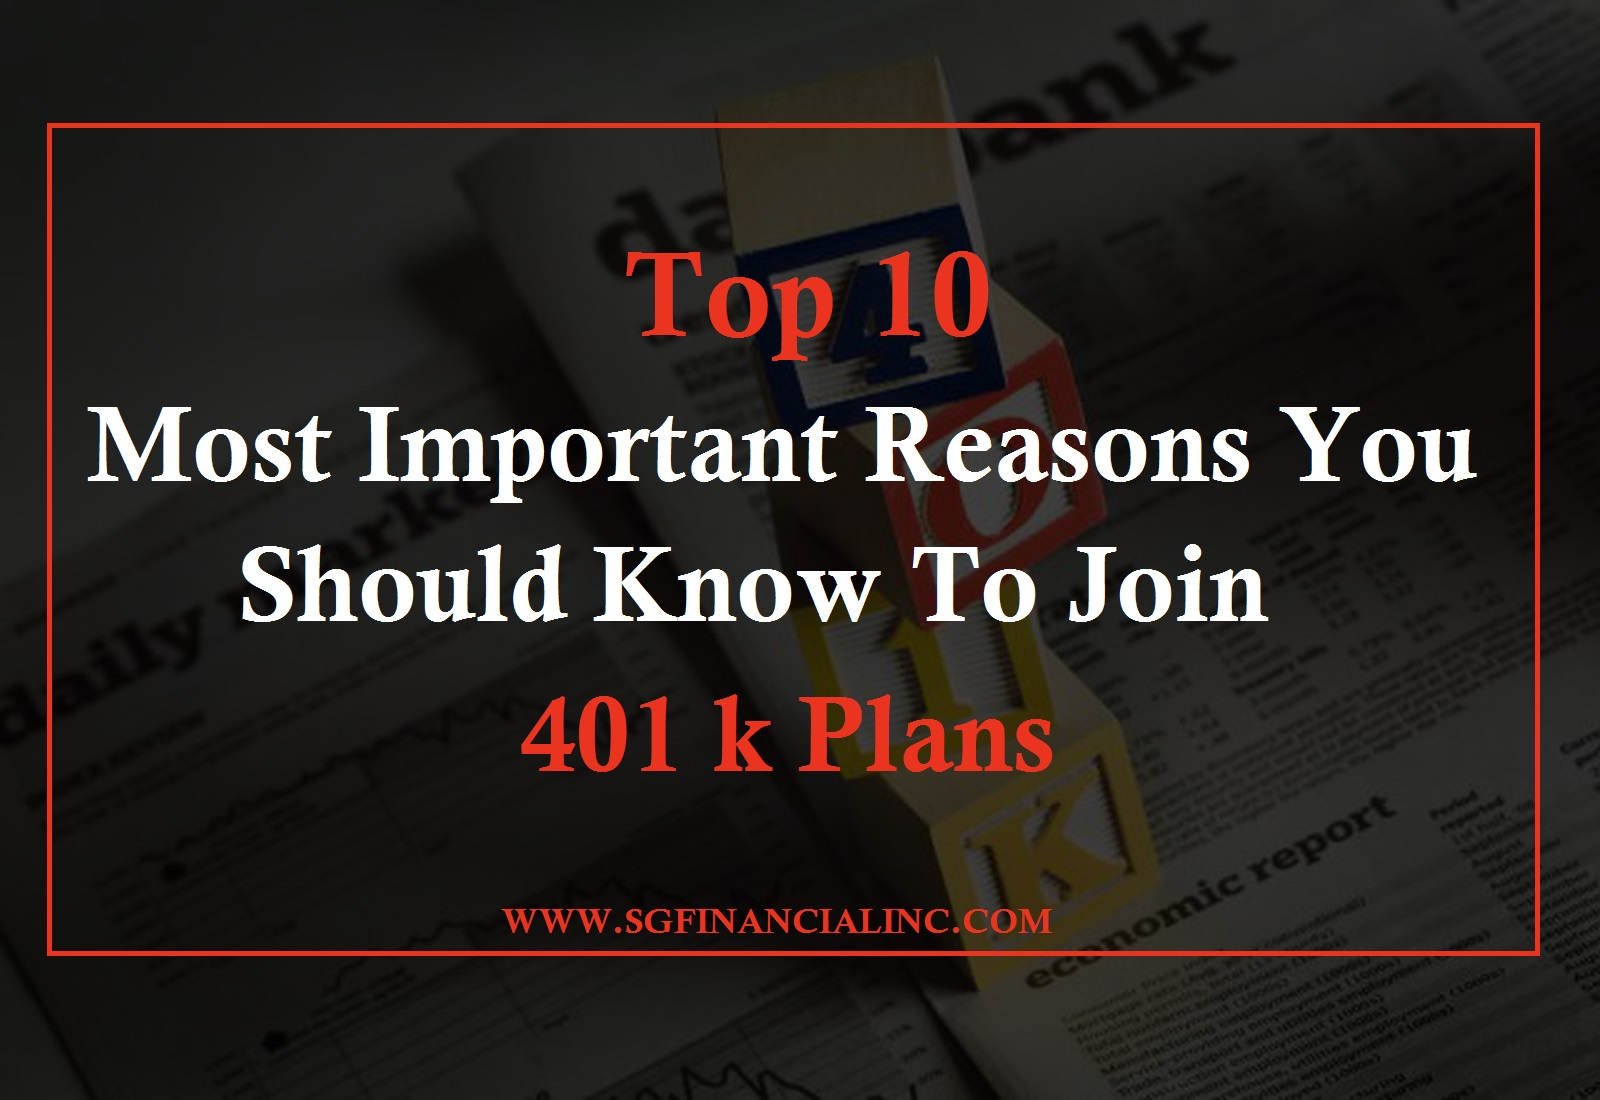 Top 10 Most Important Reasons You Should Know to join 401 k Plans